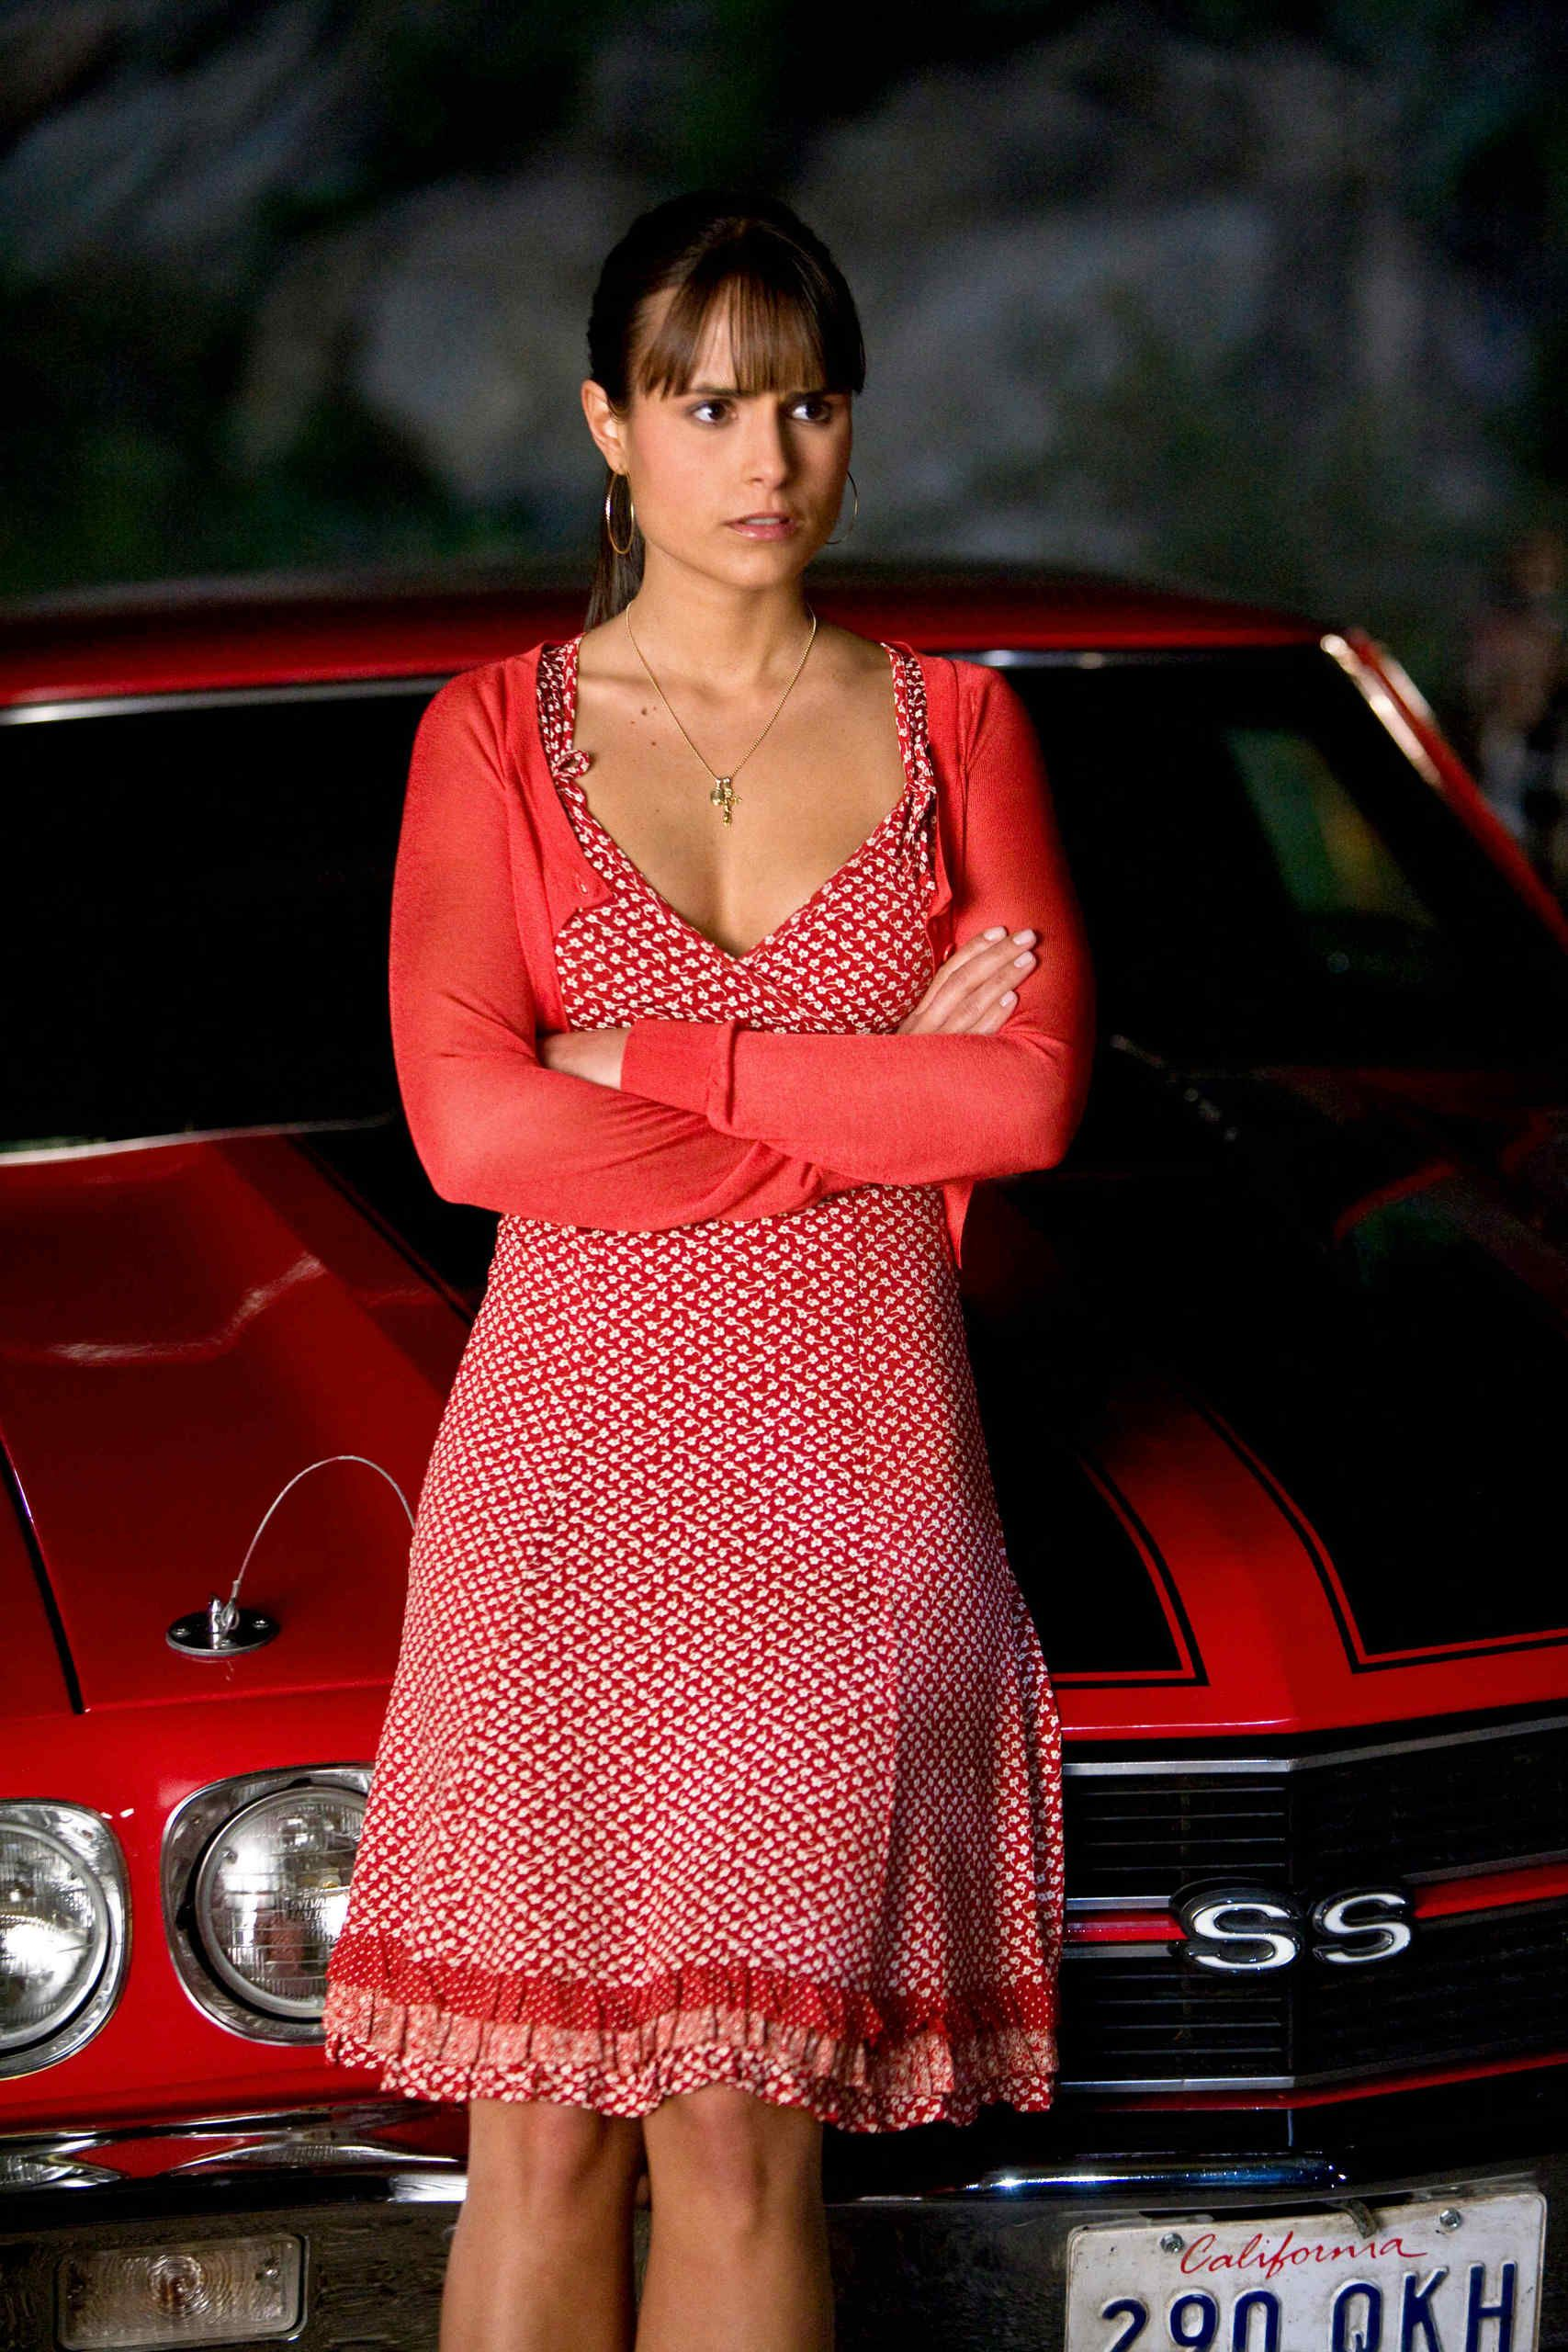 Jordana brewster fast and furious porn